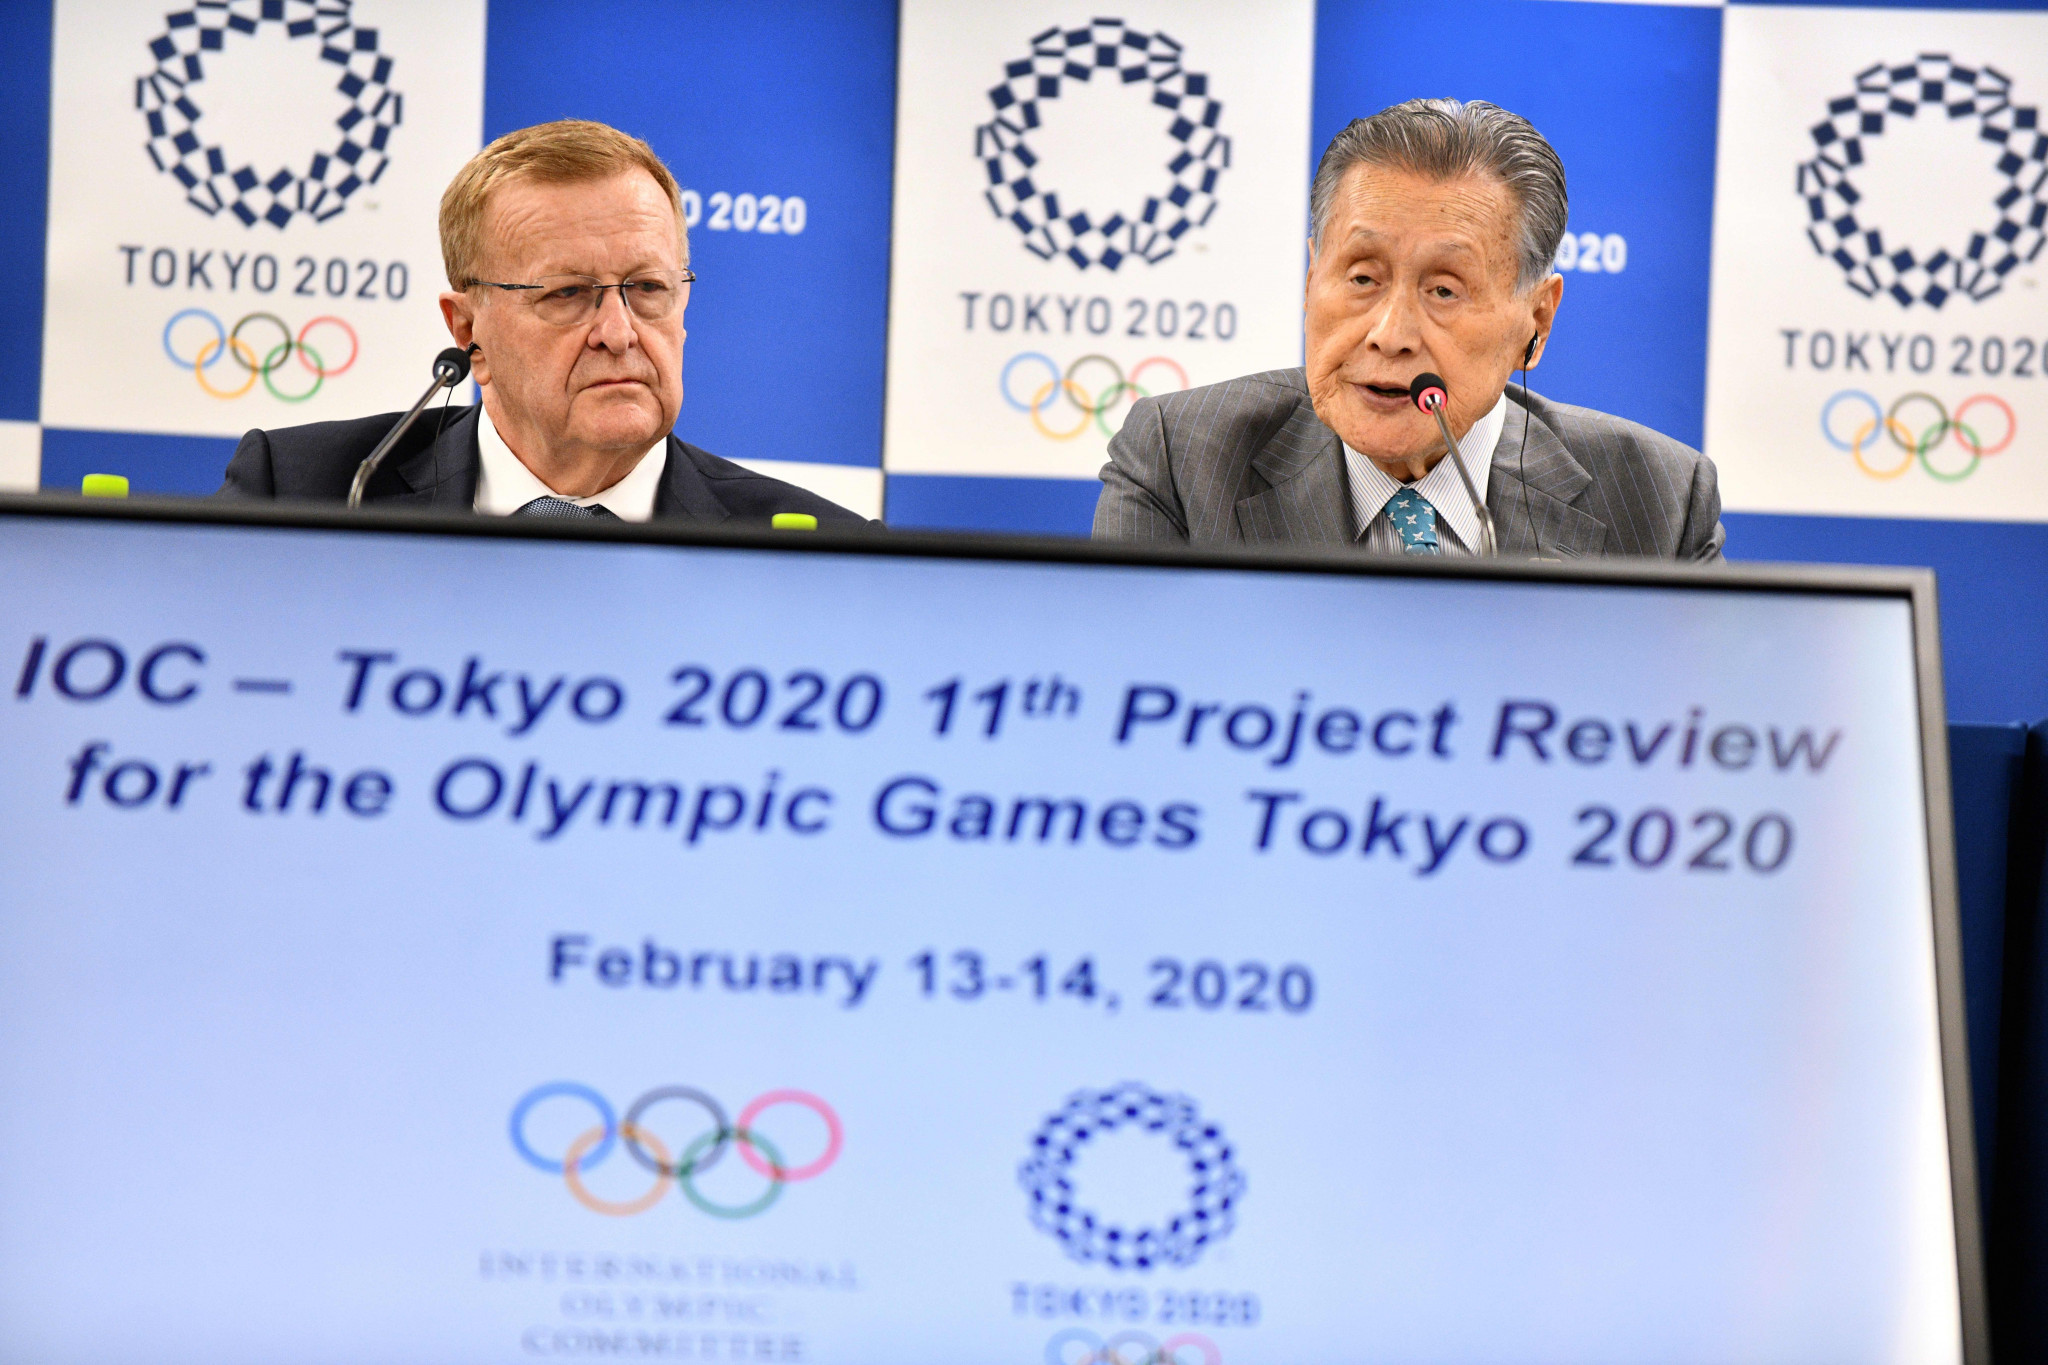 Senior IOC member John Coates played down suggestions Tokyo 2020 could be cancelled or postponed ©Getty Images